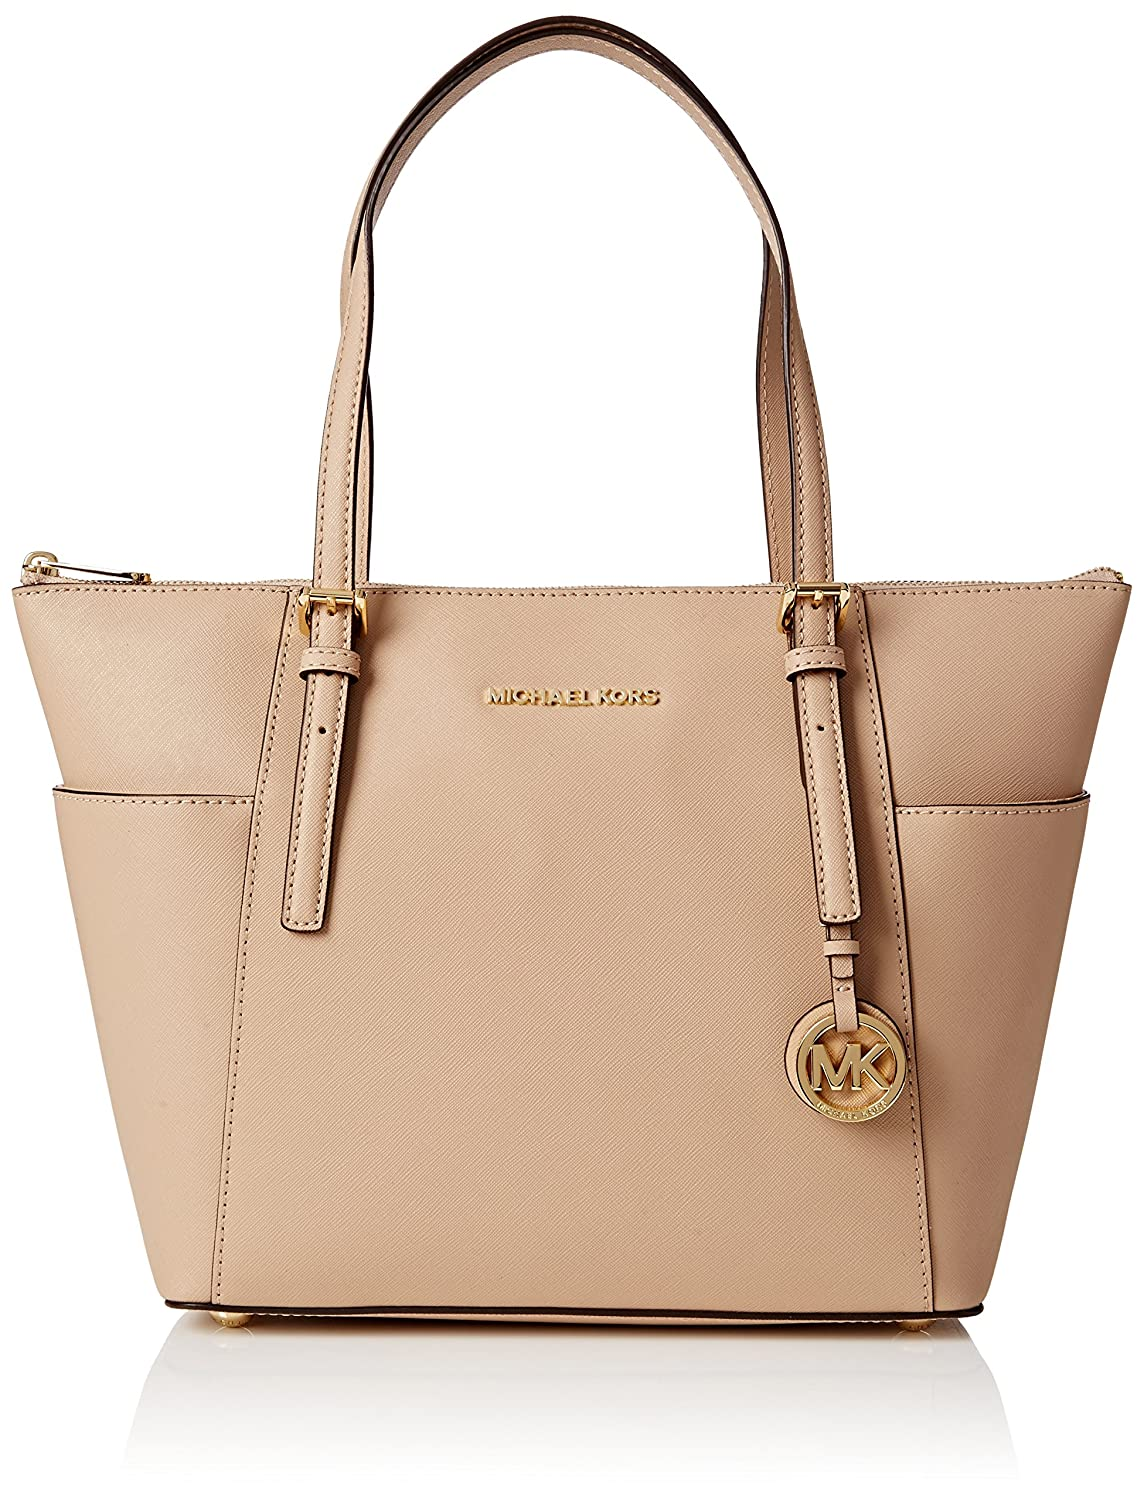 b0e8056b8d30 Michael Kors Womens Jet Set Item Tote, Beige (Oyster), 11.4x25.4x38.1 cm (W  x H x L): Amazon.co.uk: Shoes & Bags